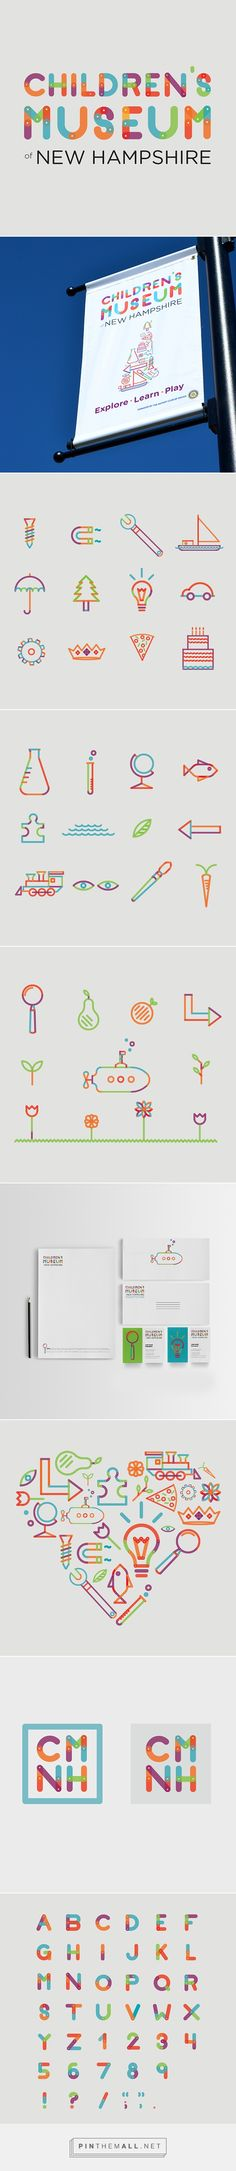 Children's Museum of New Hampshire Re-Brand on Behance. - a grouped images picture Children's Museum of New Hampshire Re-Brand on Behance - created via Corporate Design, Brand Identity Design, Graphic Design Branding, Logo Design, Corporate Branding, Illustration Inspiration, Graphic Design Inspiration, Brand Inspiration, Kids Branding